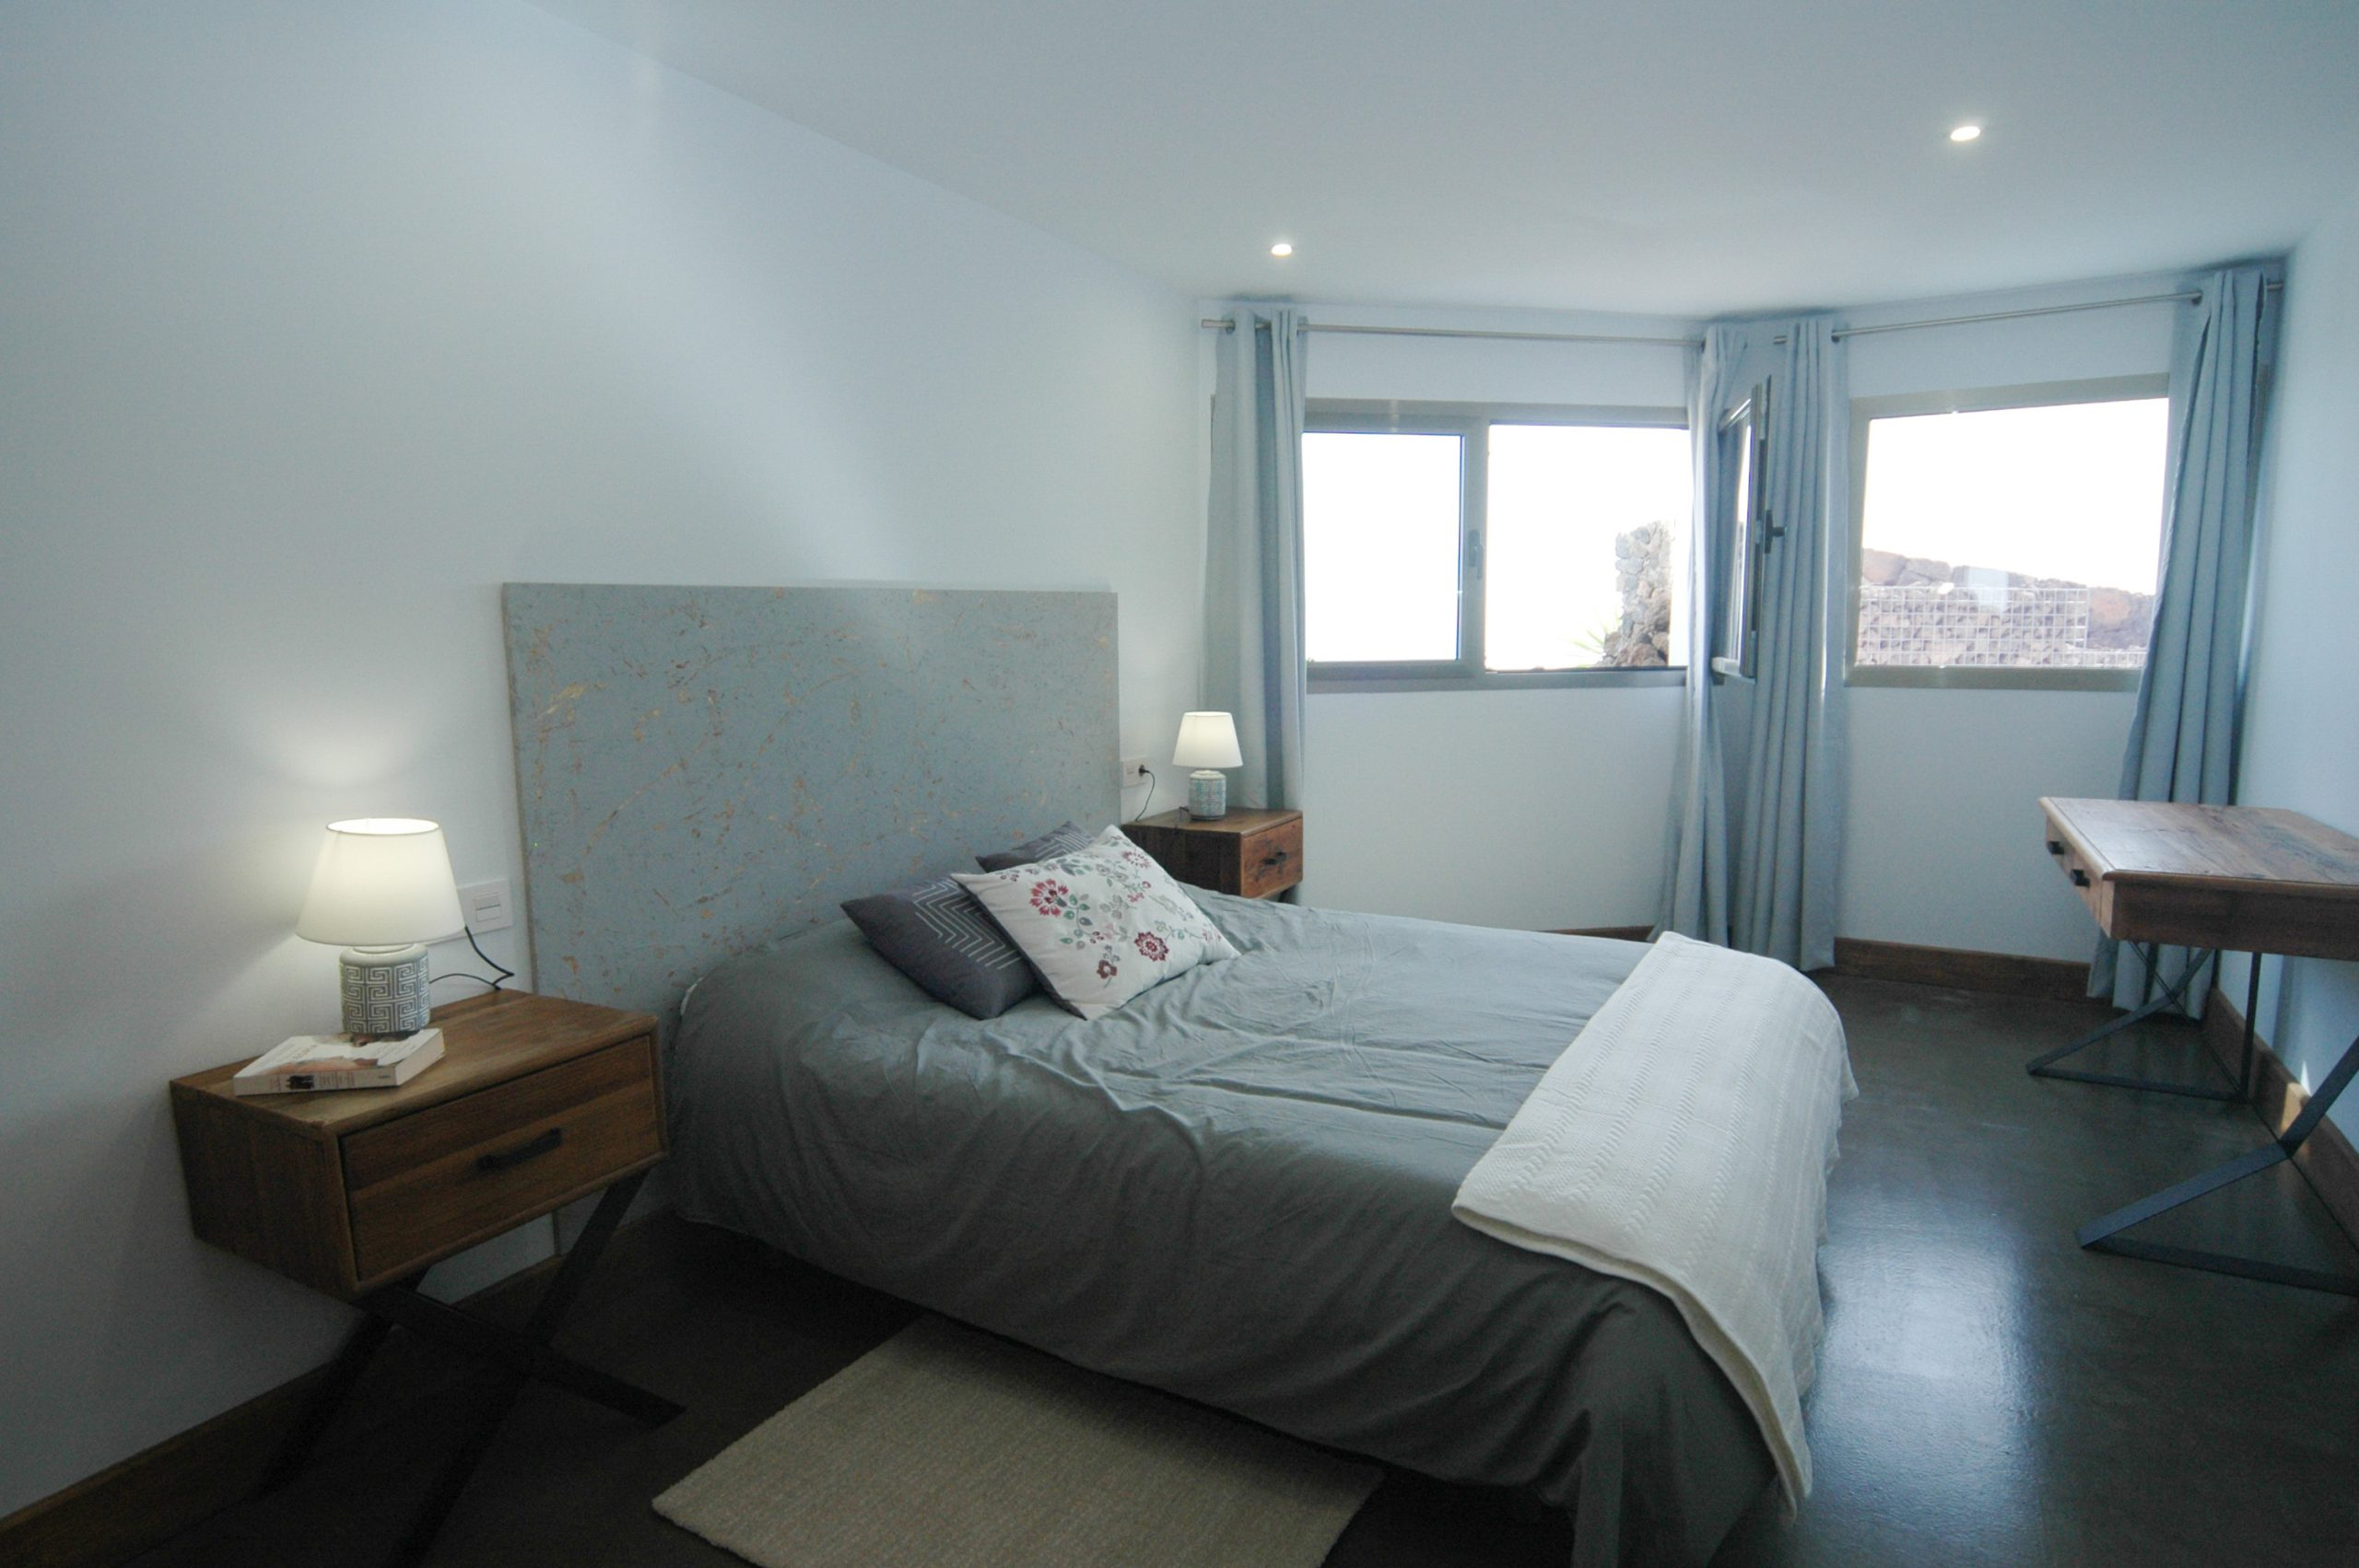 LVC339887 Bedroom with double bed and great views